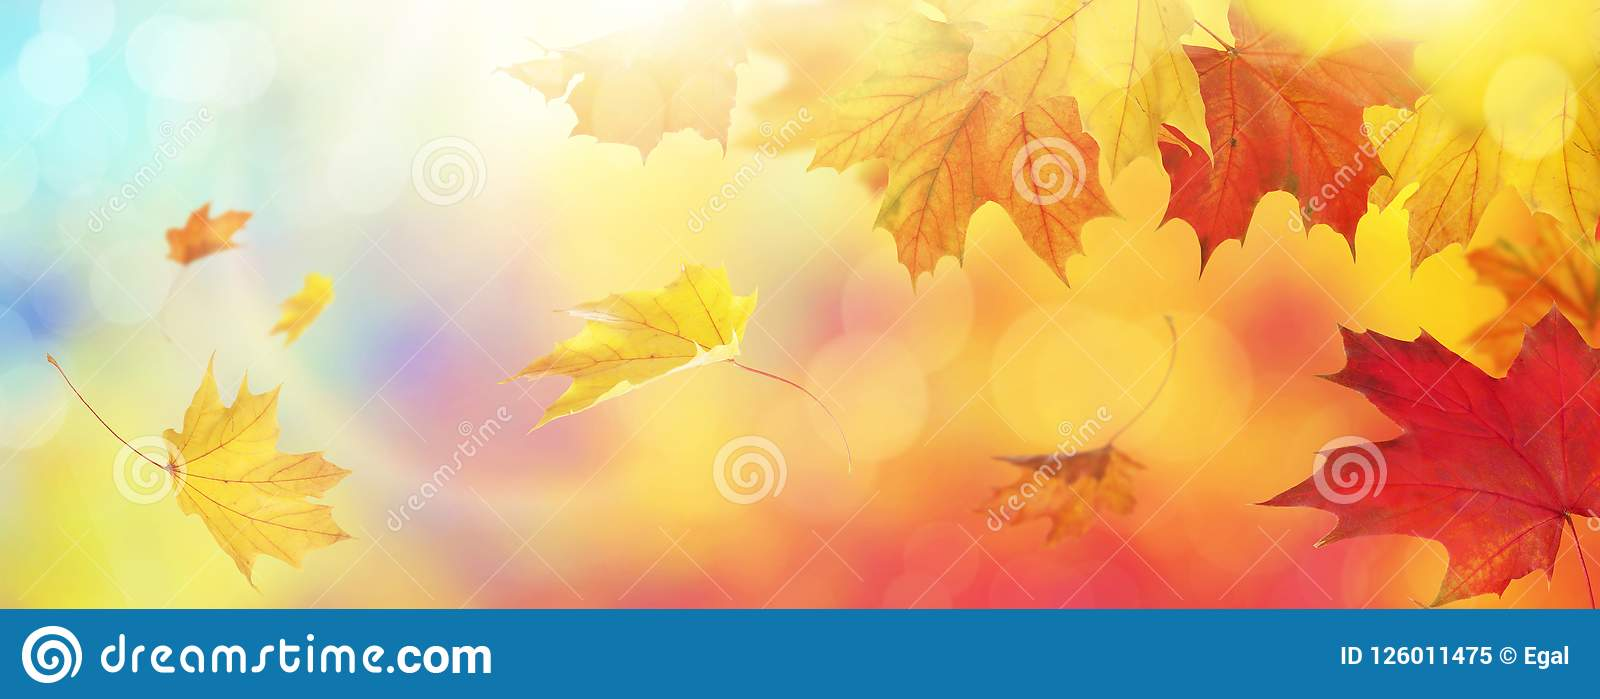 Download Abstract autumn background stock image. Image of leaves - 126011475